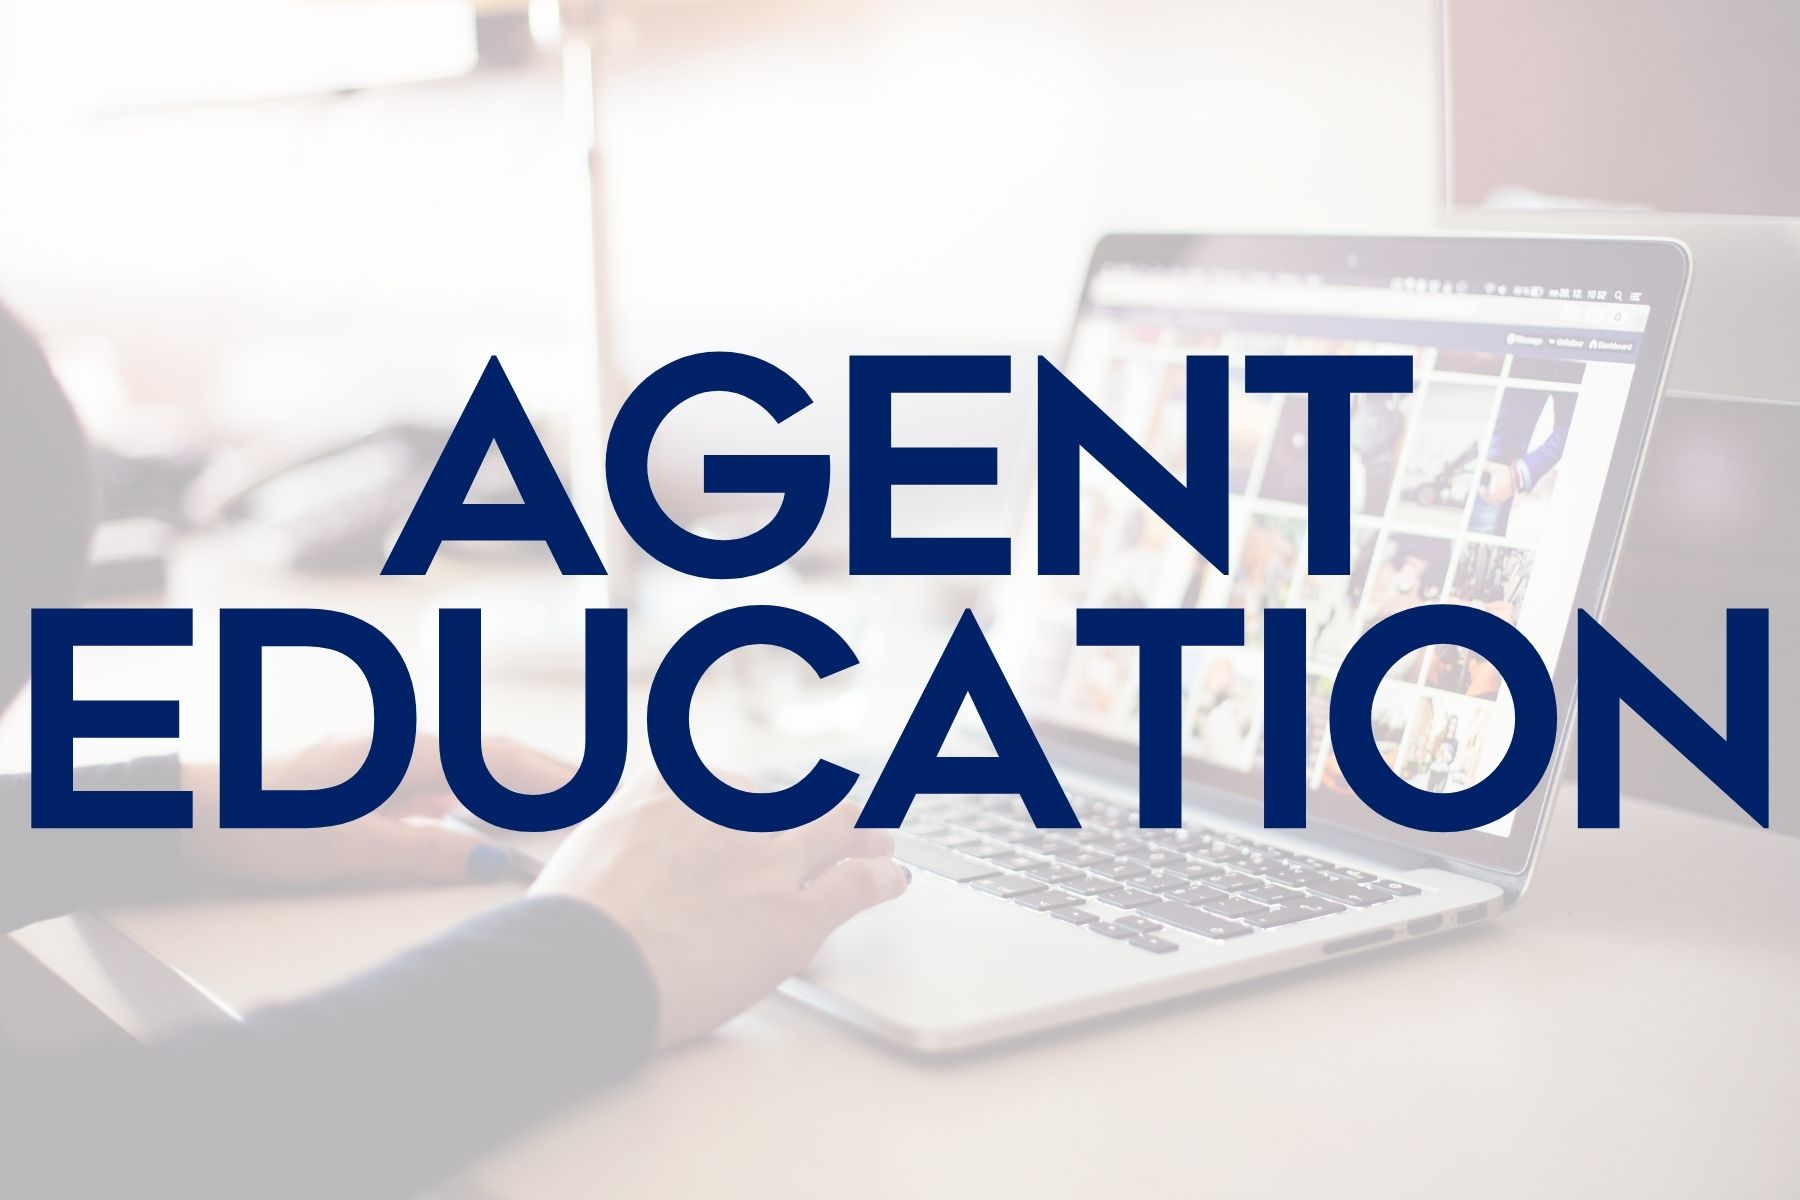 coldwell banker elite agent education blogs